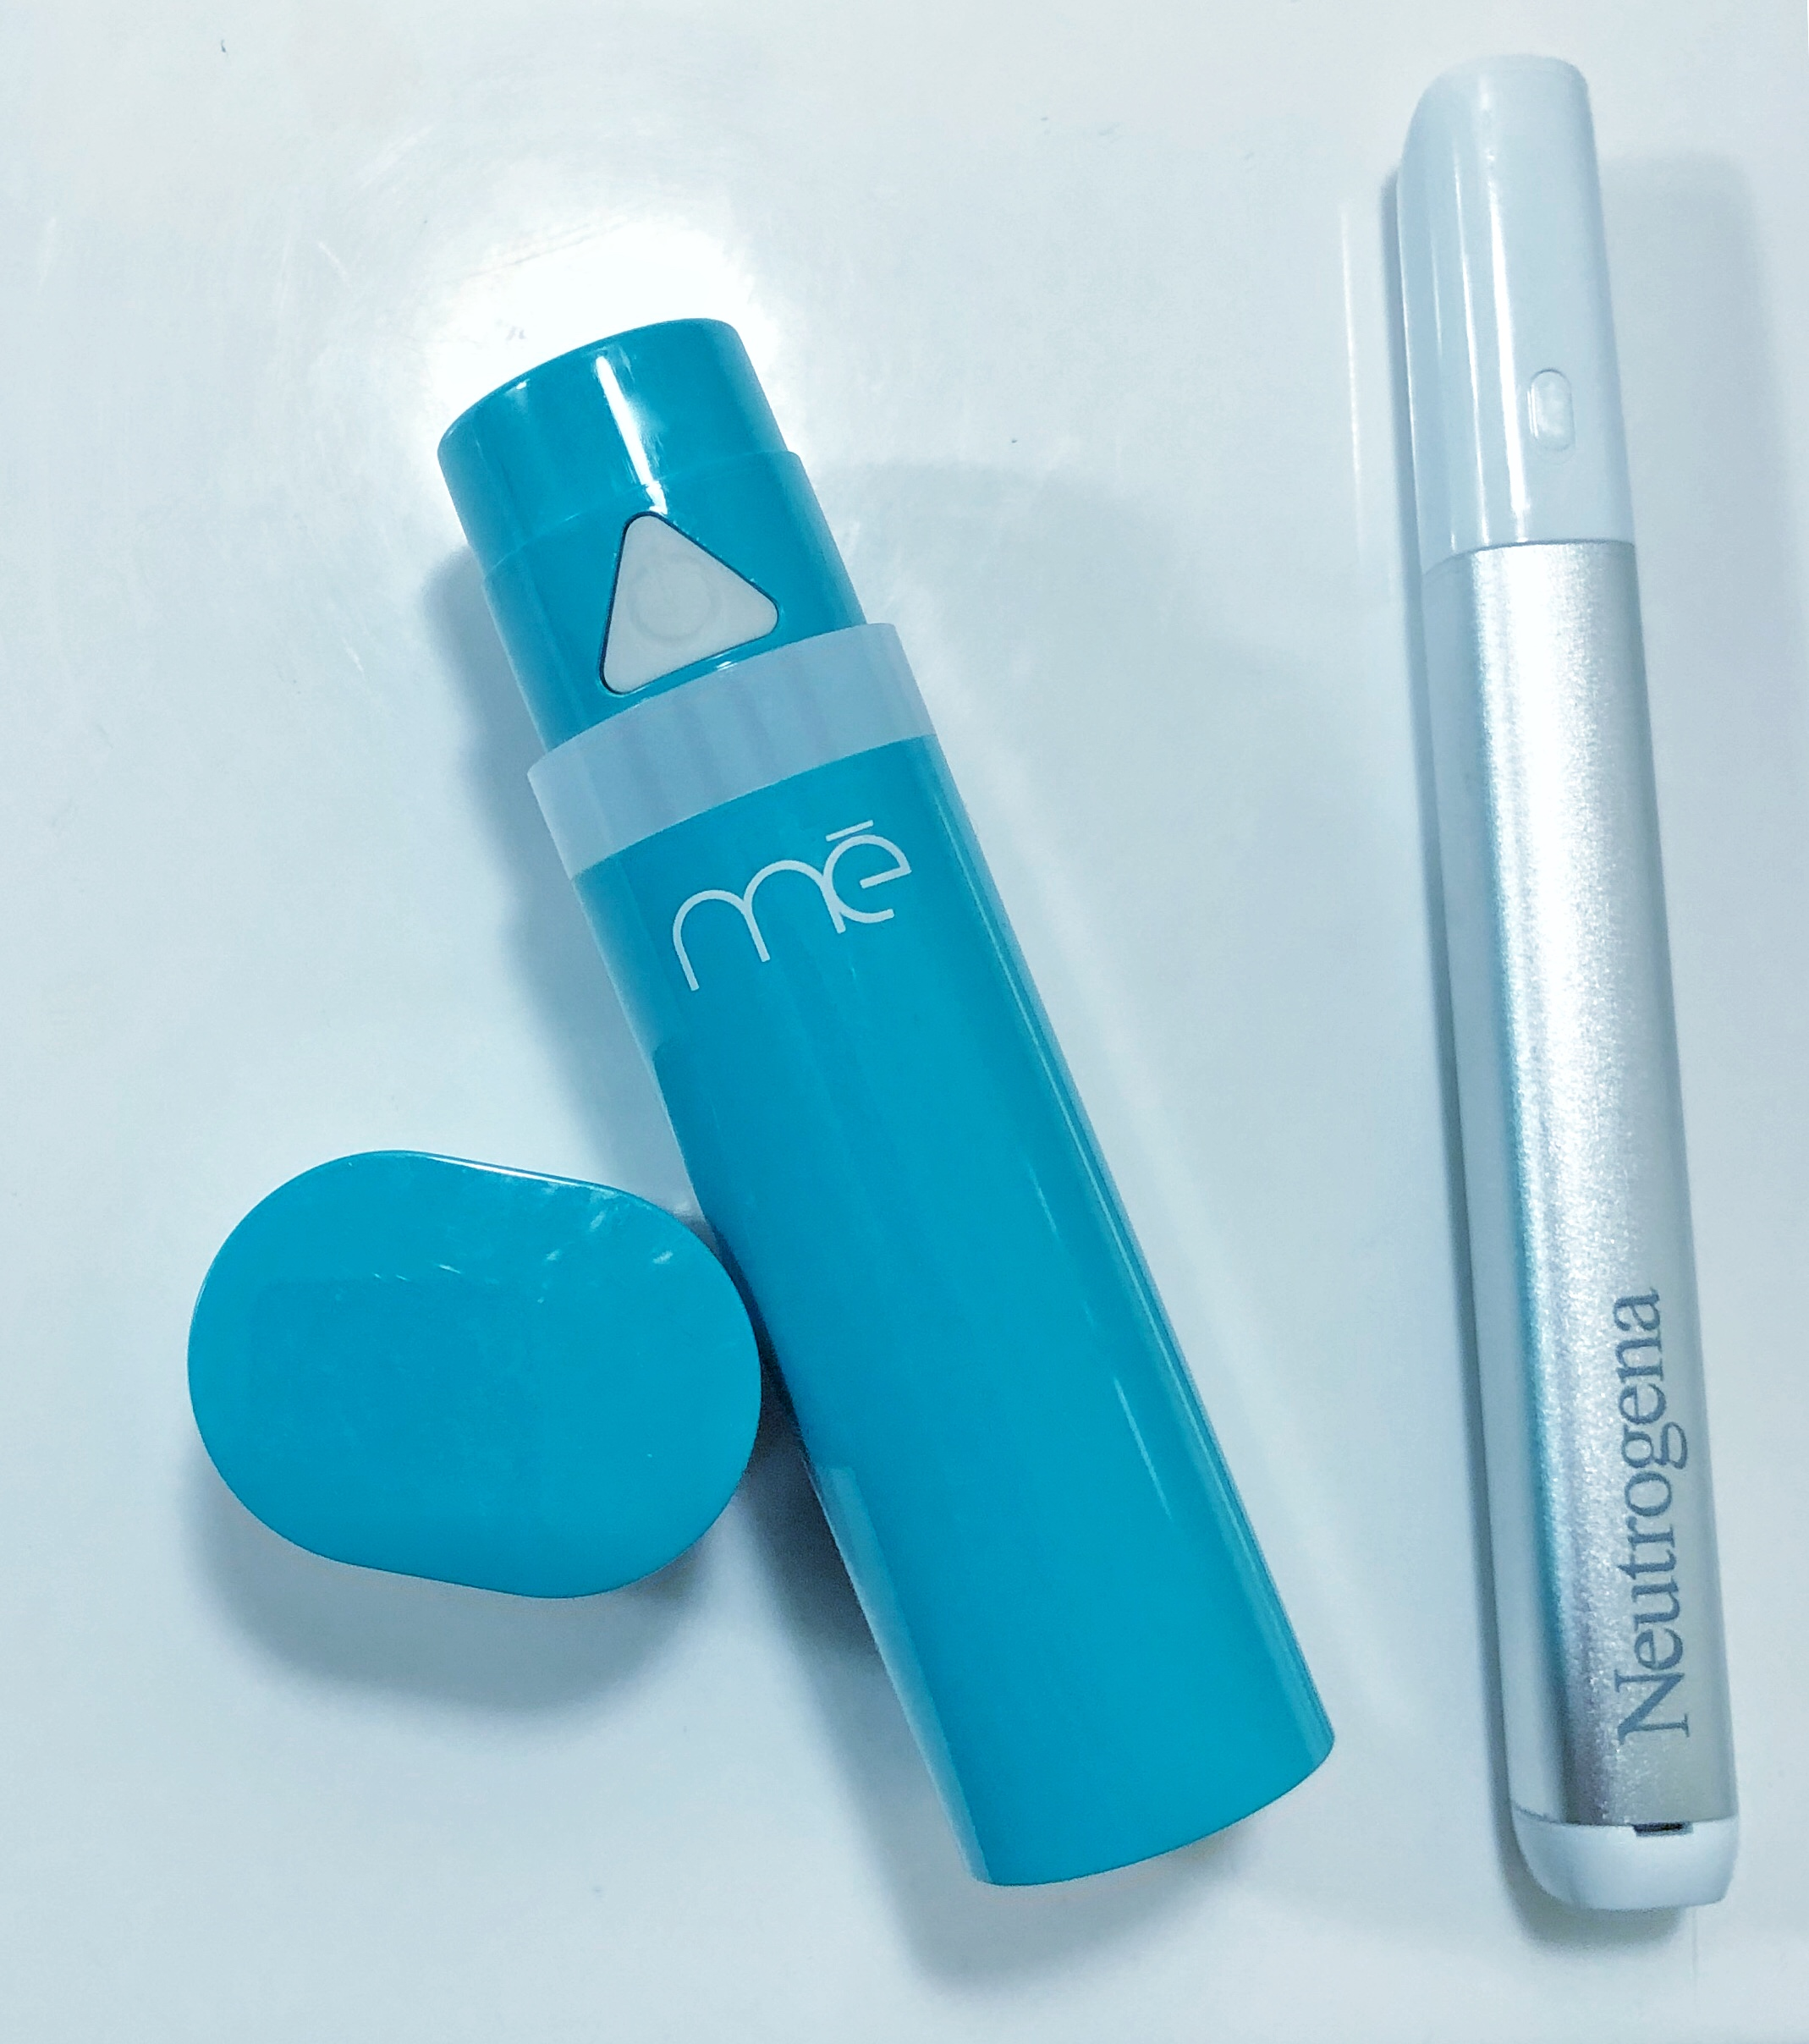 I go between the ME Clear and Neutrogena Light Therapy Pen for pimple spot treatment!